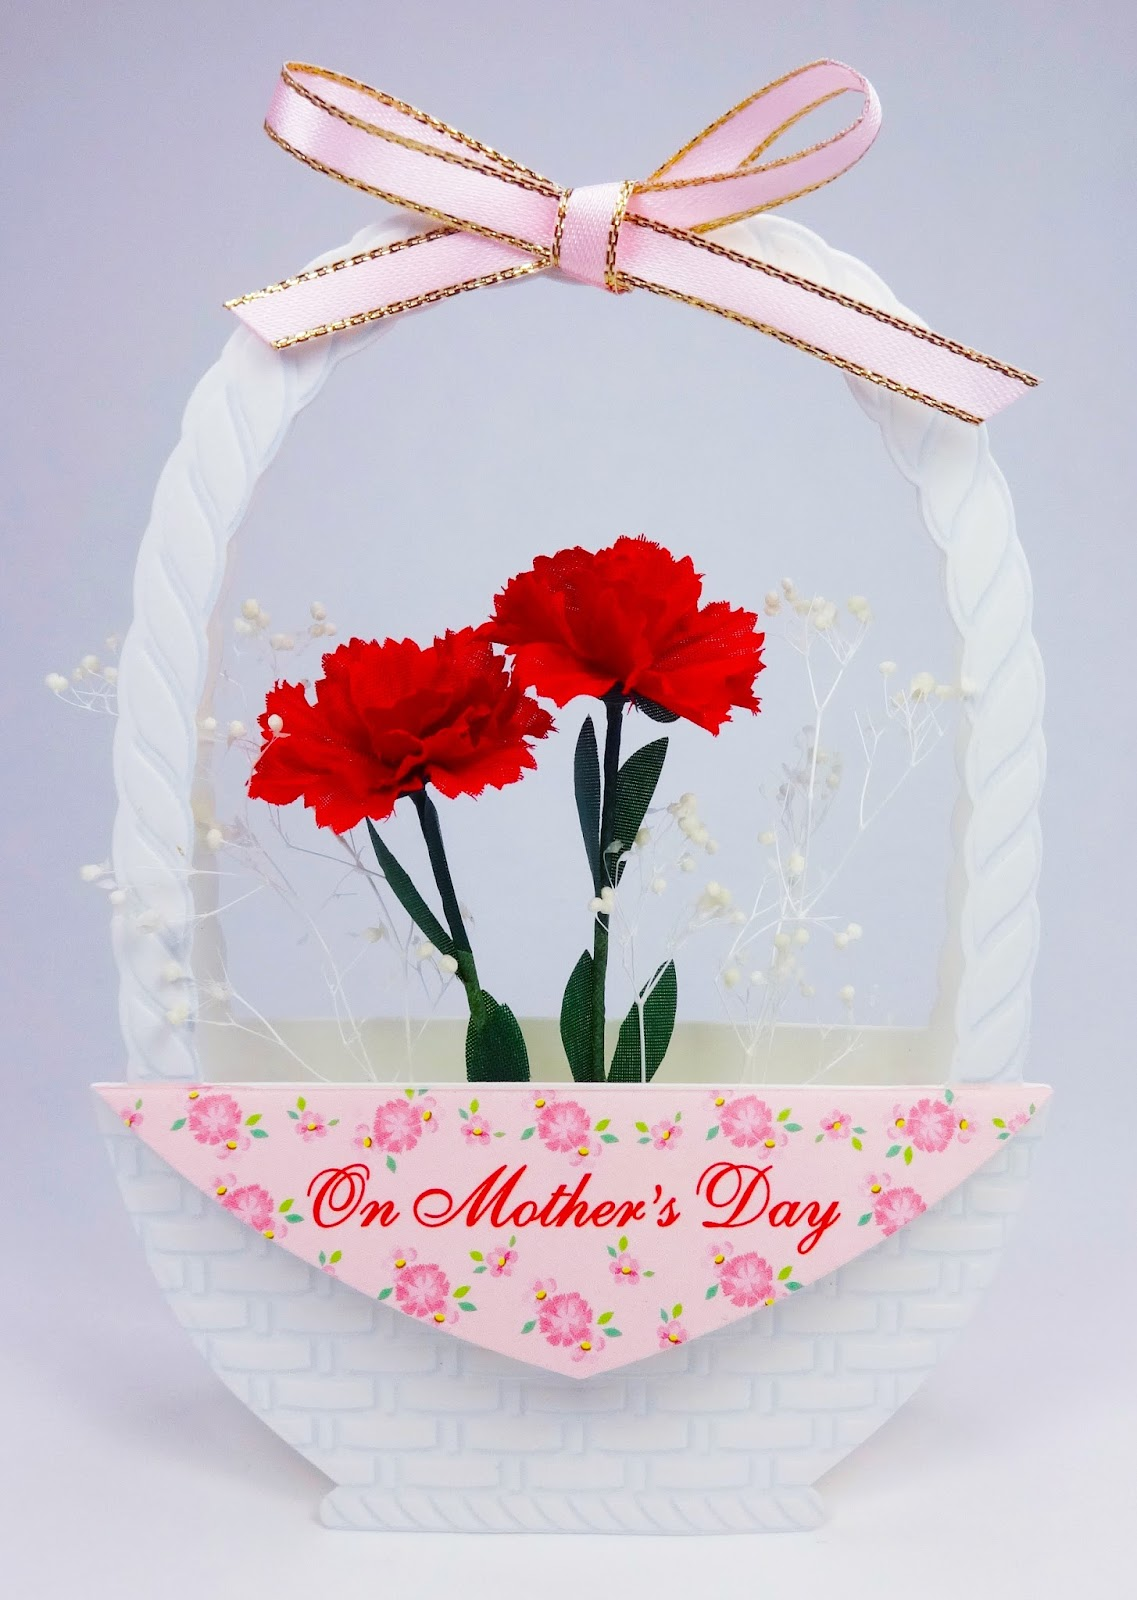 Mother's Day Flower Basket Pop Up Decorative Greeting Card